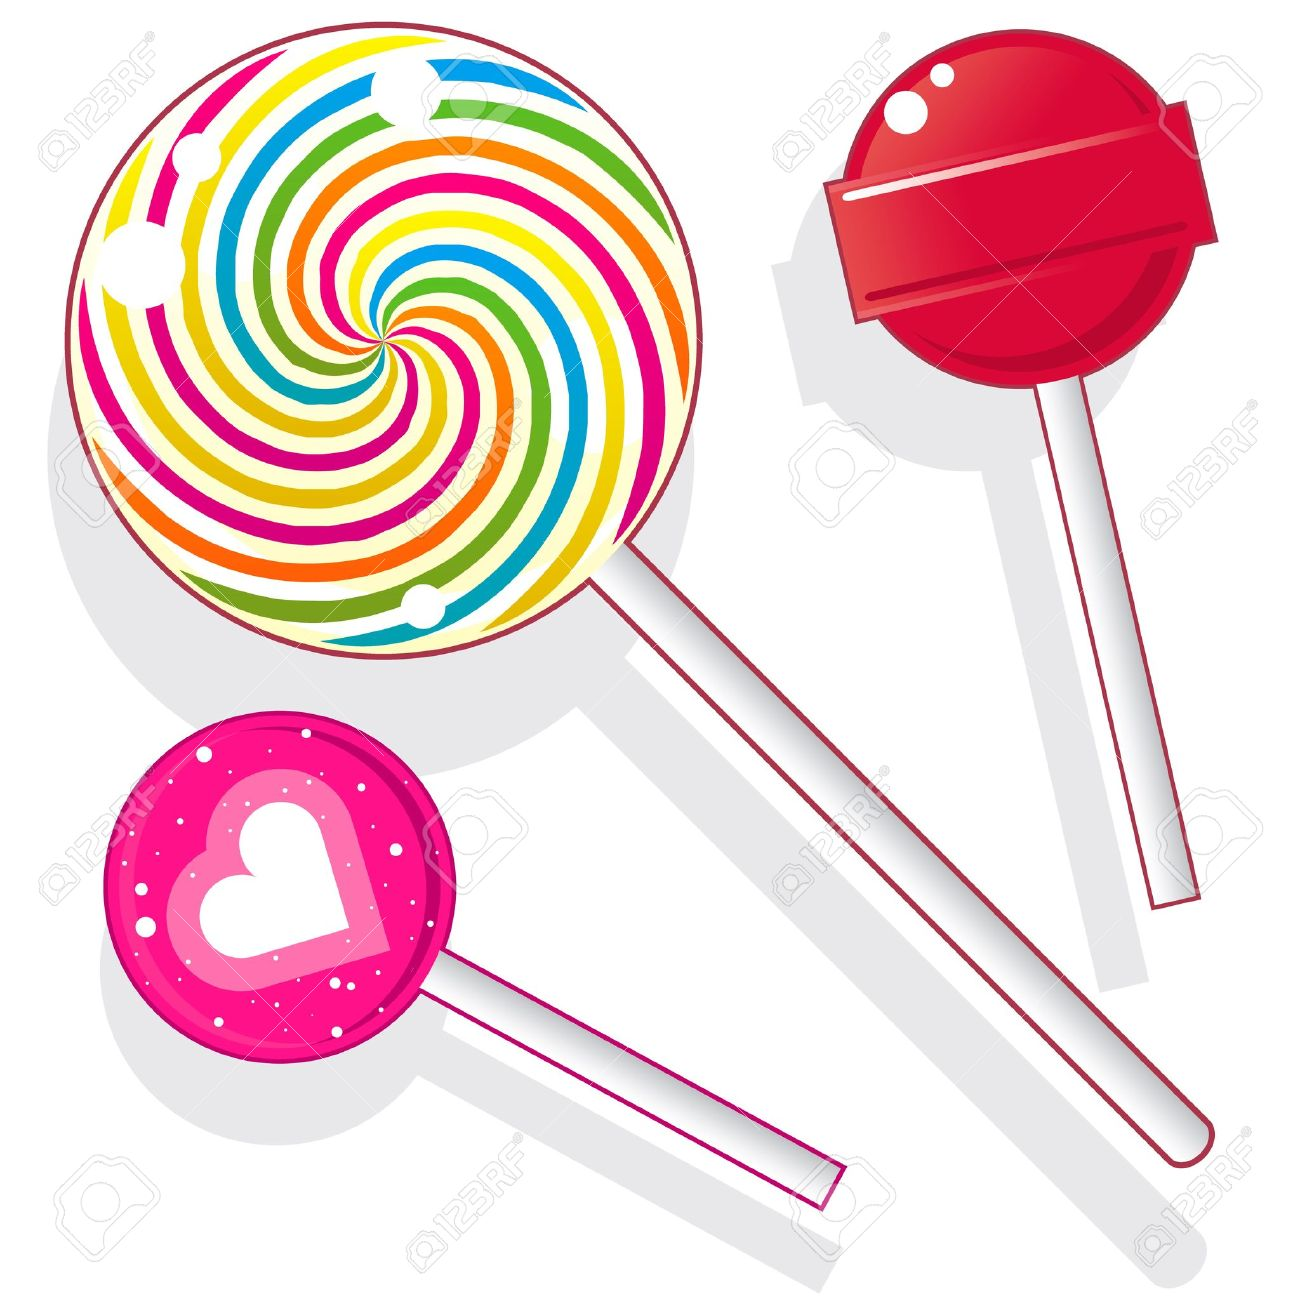 hight resolution of 1300x1300 lollipop clipart lolly